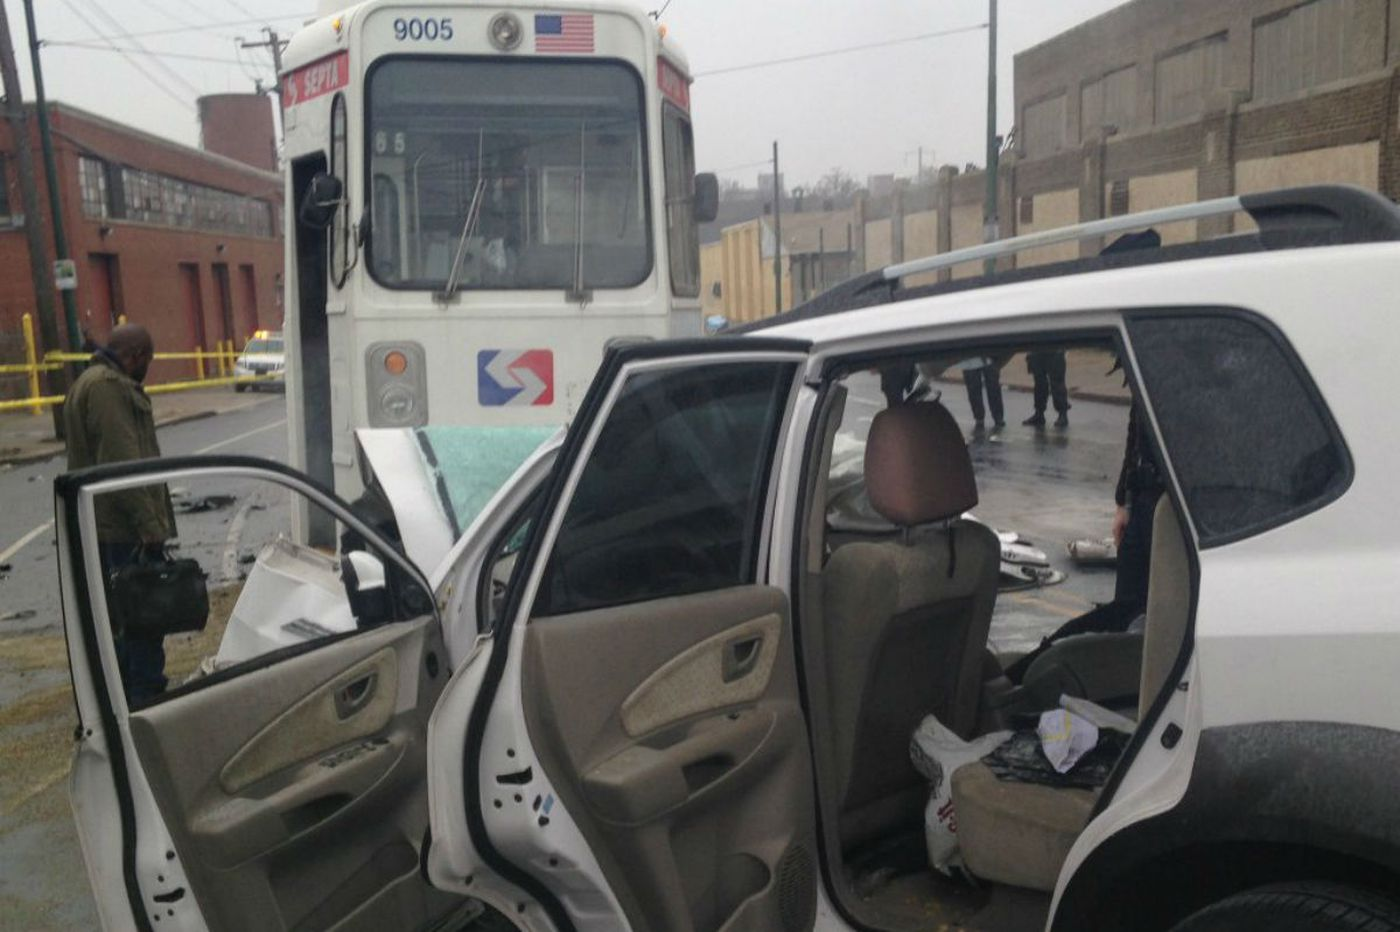 30 hurt in Southwest Phila. trolley crash